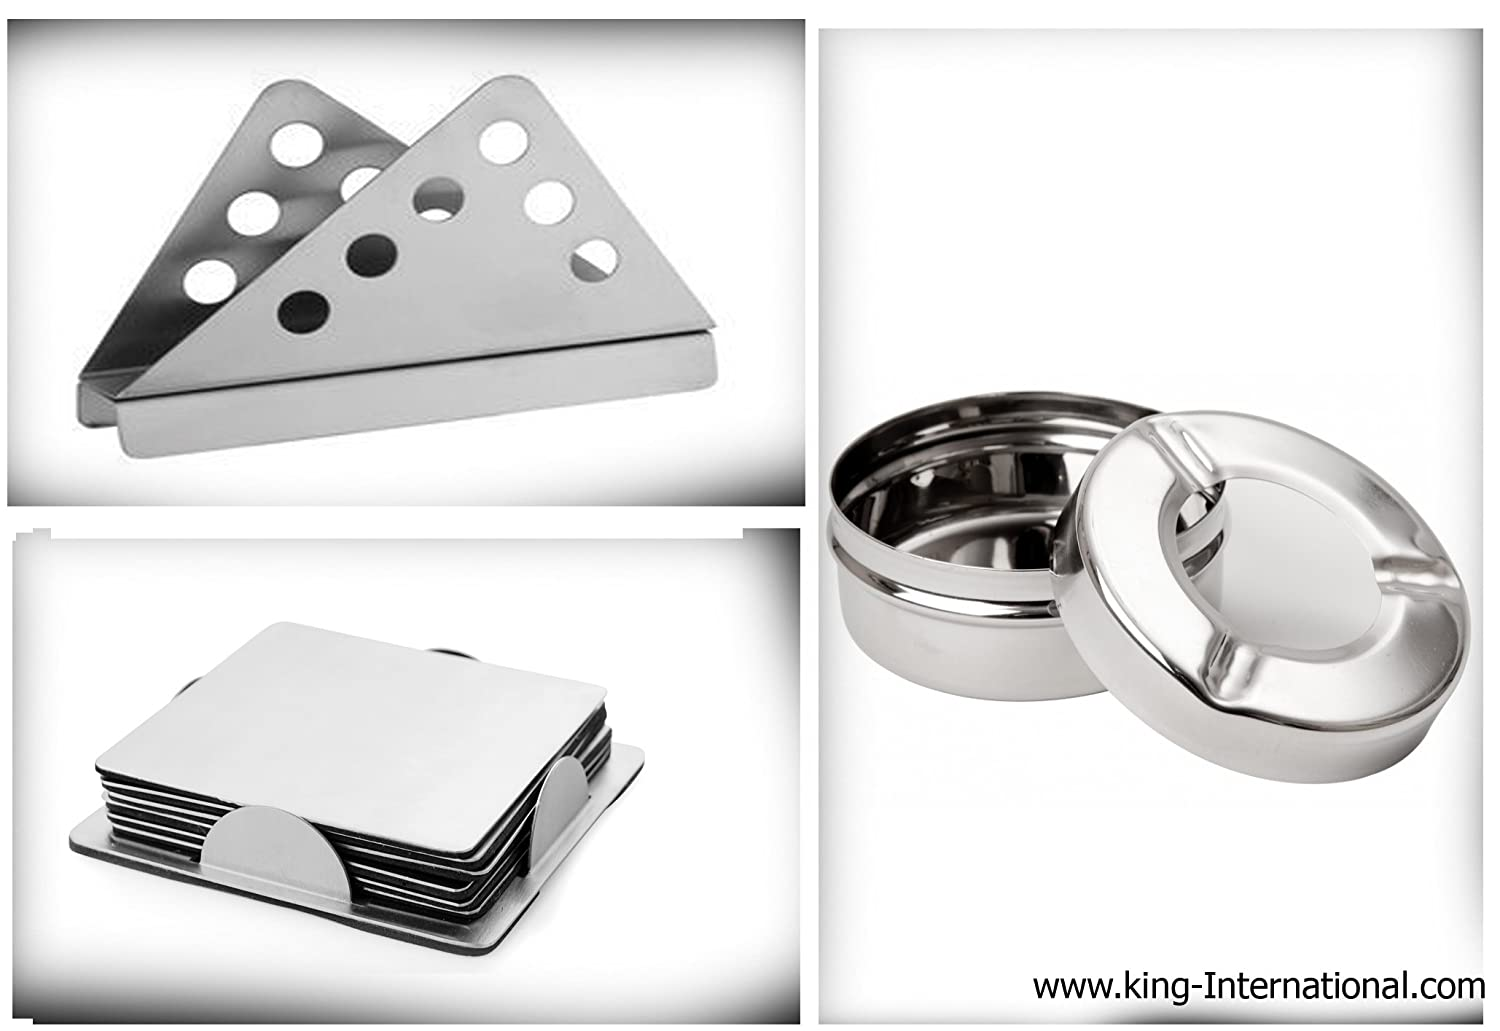 King International stainless steel ash tray with lid and square coaster with triangle tissue holder set of 3 piece.